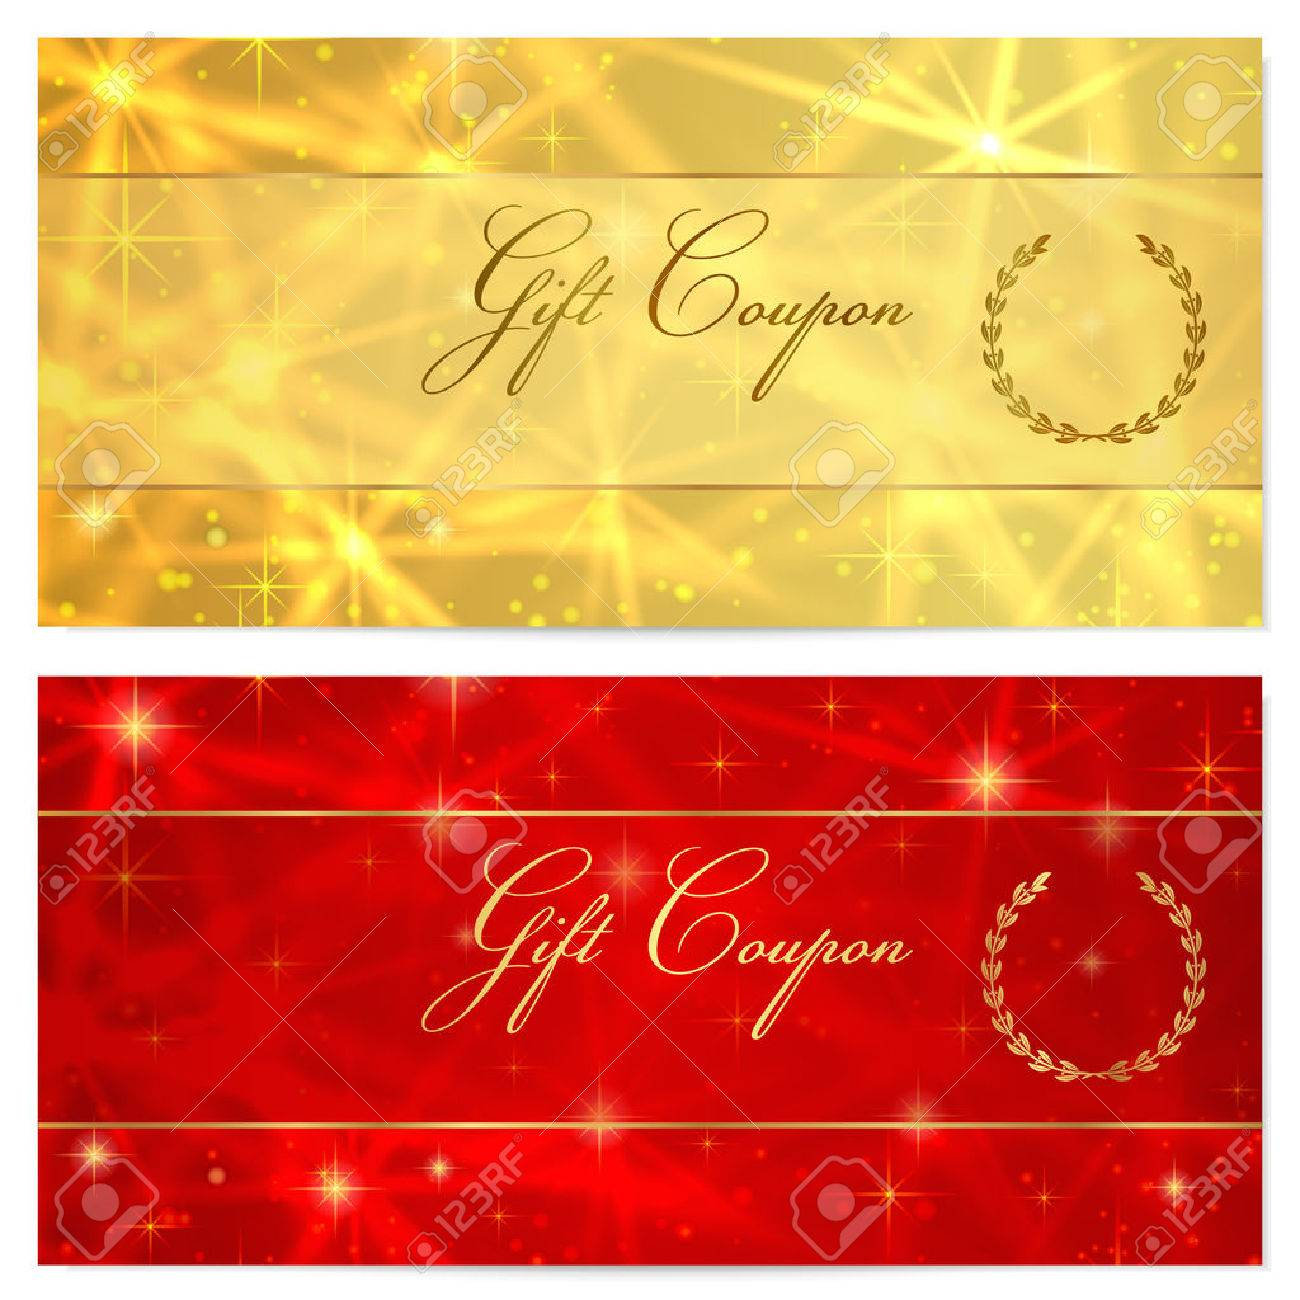 Gift certificate voucher coupon reward or gift card template gift certificate voucher coupon reward or gift card template with sparkling twinkling yelopaper Image collections